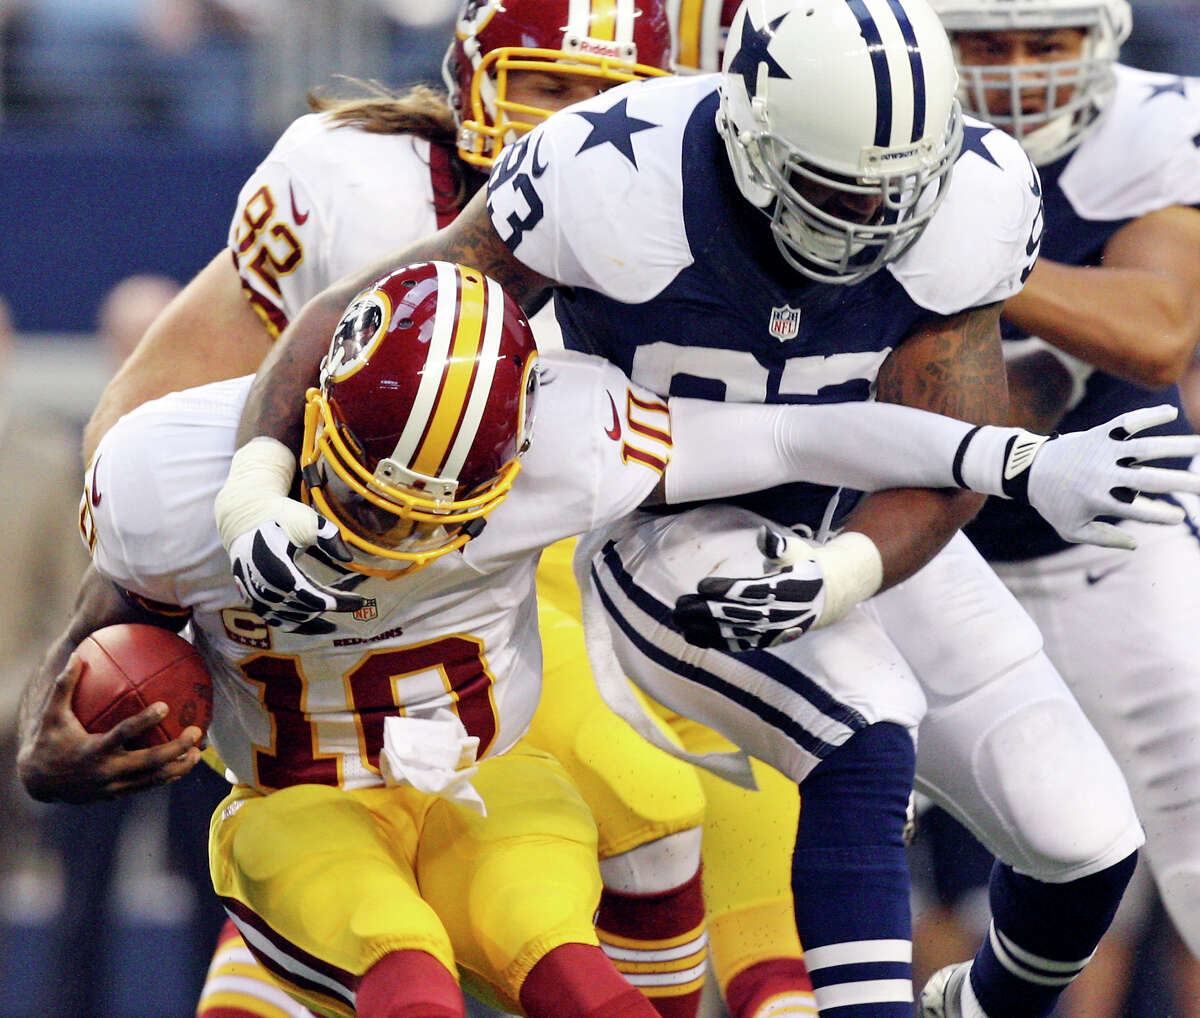 The Washington Redskins' Robert Griffin III is sacked by the Dallas Cowboys' Anthony Spencer during first half action Thursday, Nov. 22, 2012, at Cowboys Stadium in Arlington.